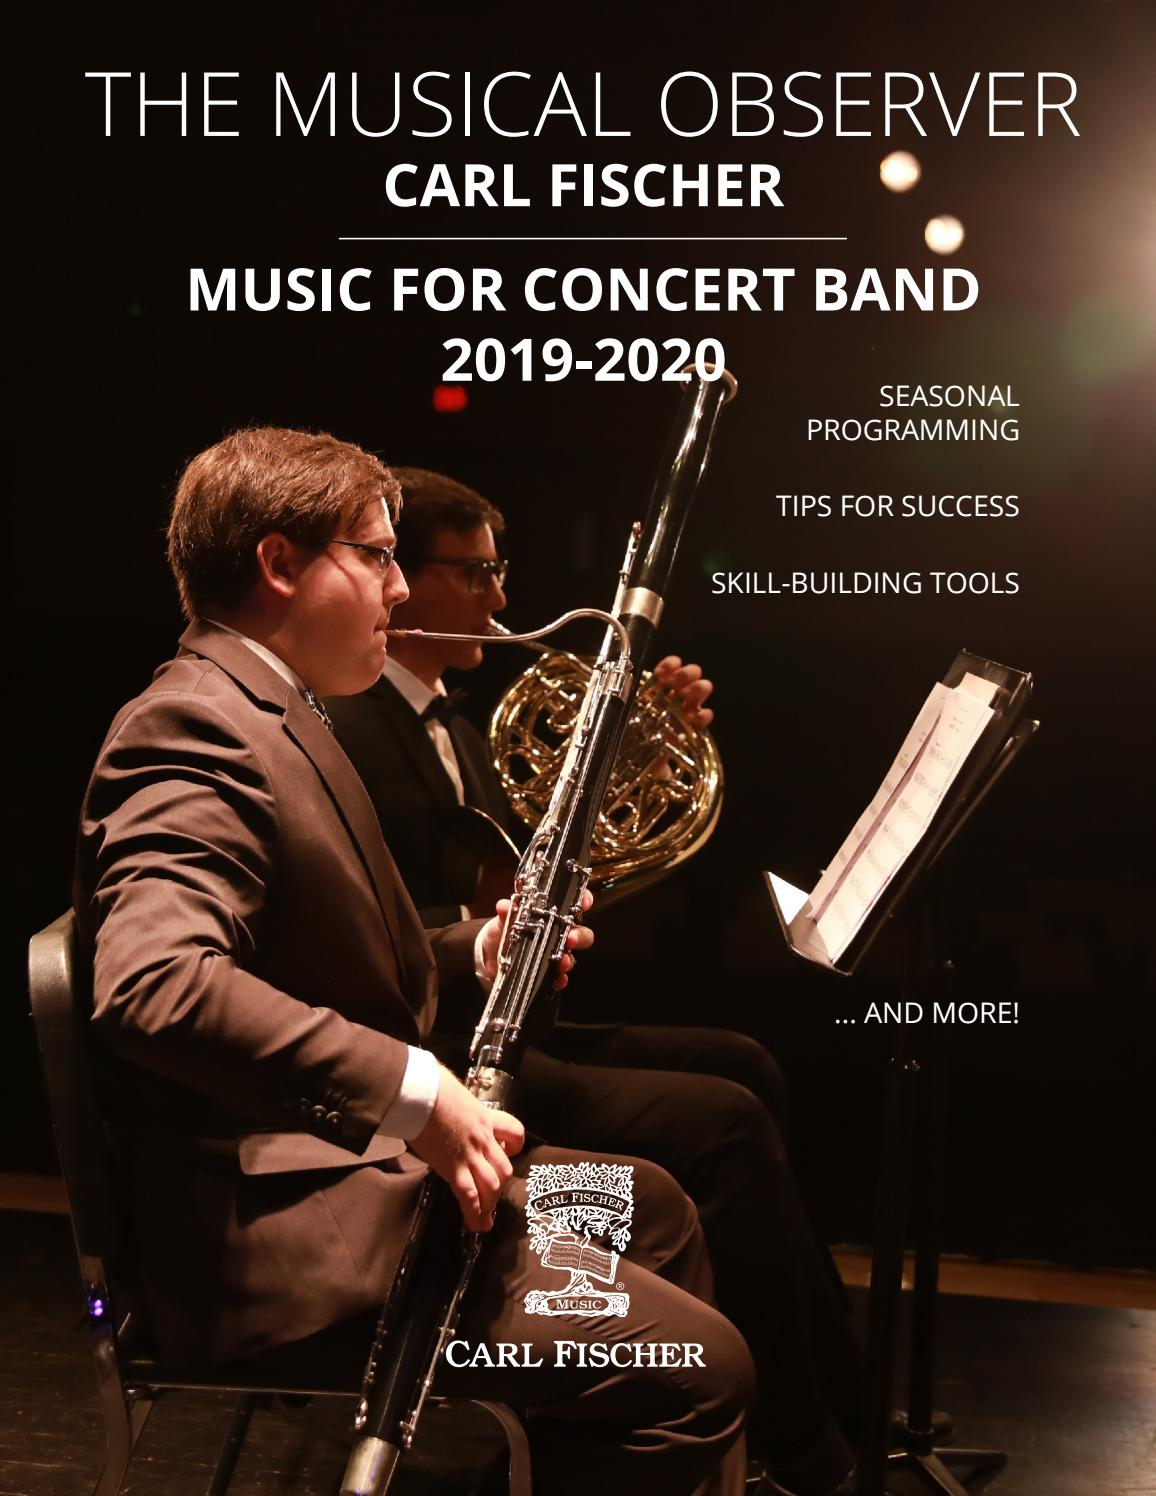 The Musical Observer: Music for Concert Band 2019 - 2020 by